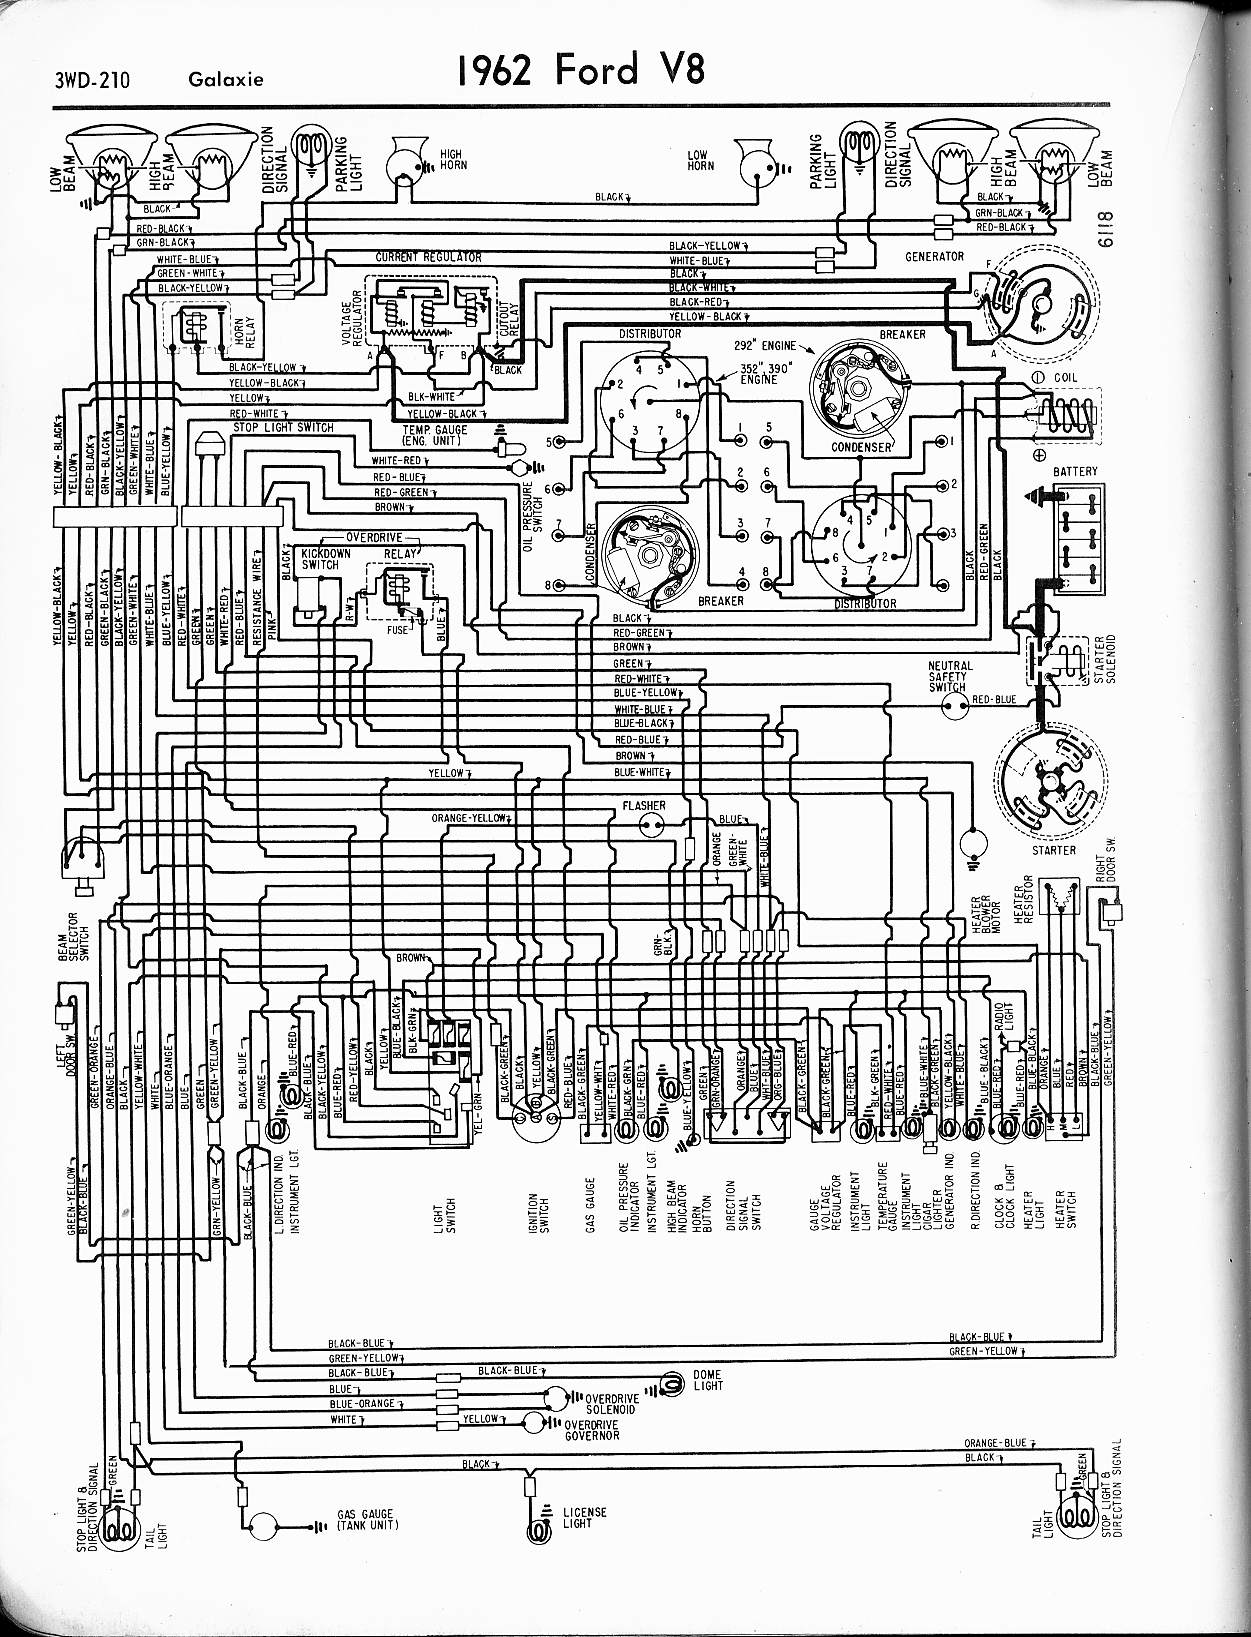 Groovy 7 Best Images Of 1966 Mustang Wiring Diagram Manual 1967 Ford Wiring Cloud Staixuggs Outletorg